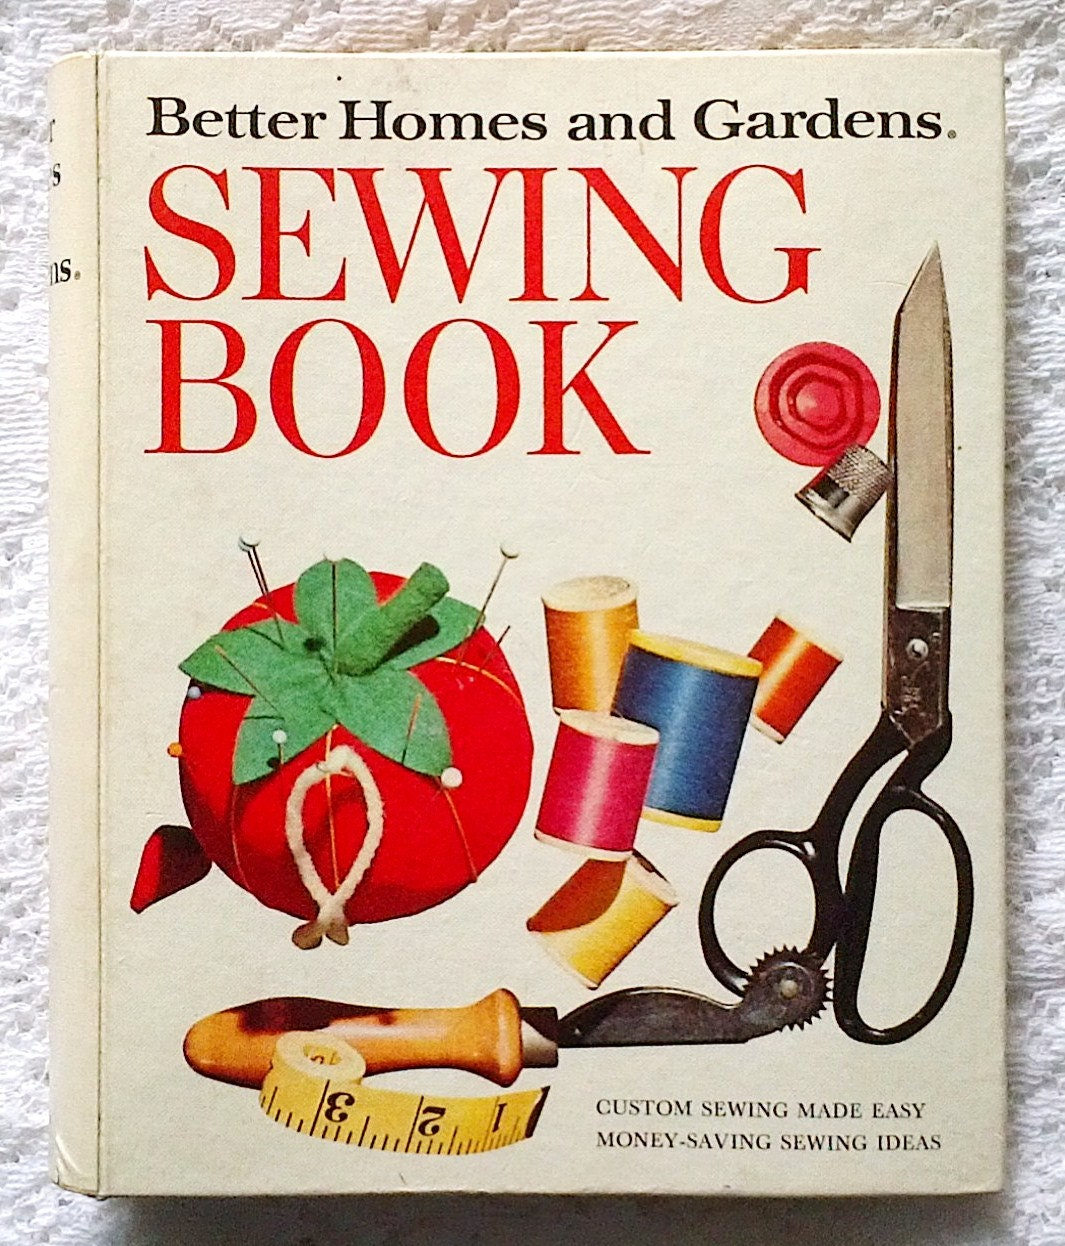 1974 Better Homes And Gardens Sewing Book Binder From